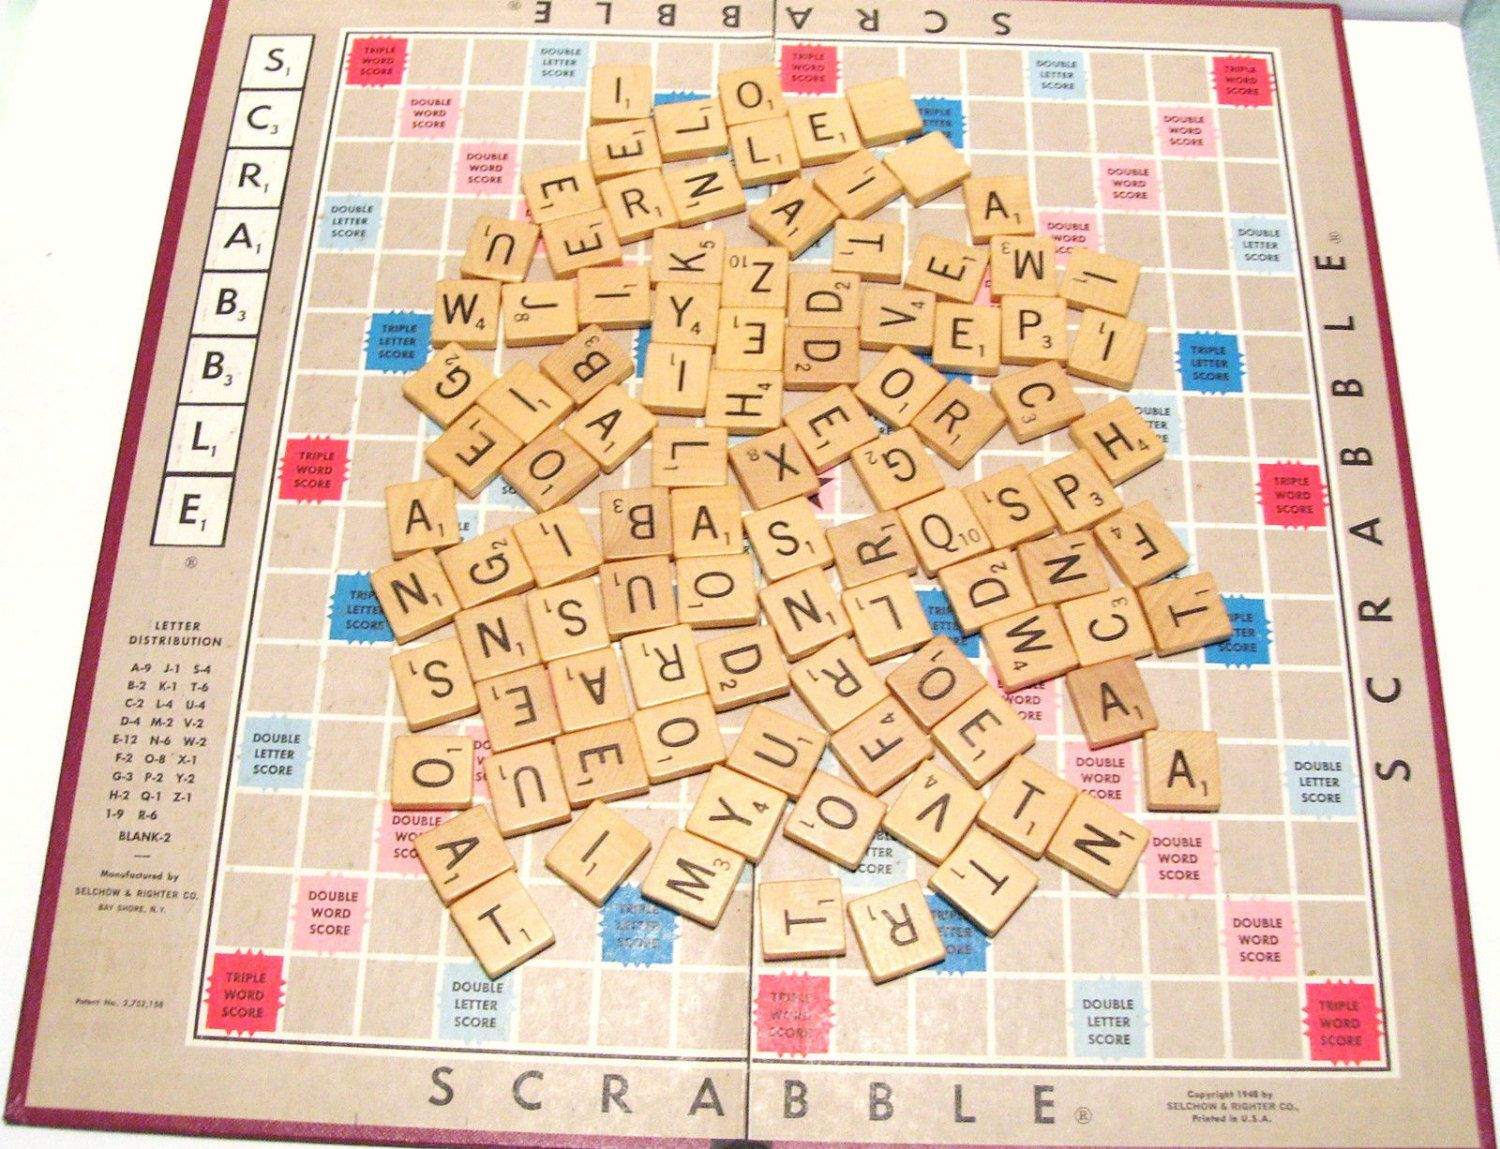 1948 Scrabble 100 Wooden Game Pieces Selchow Righter And Word Guide Book By Okanaganvintage On Etsy Wooden Games Game Pieces Guide Book